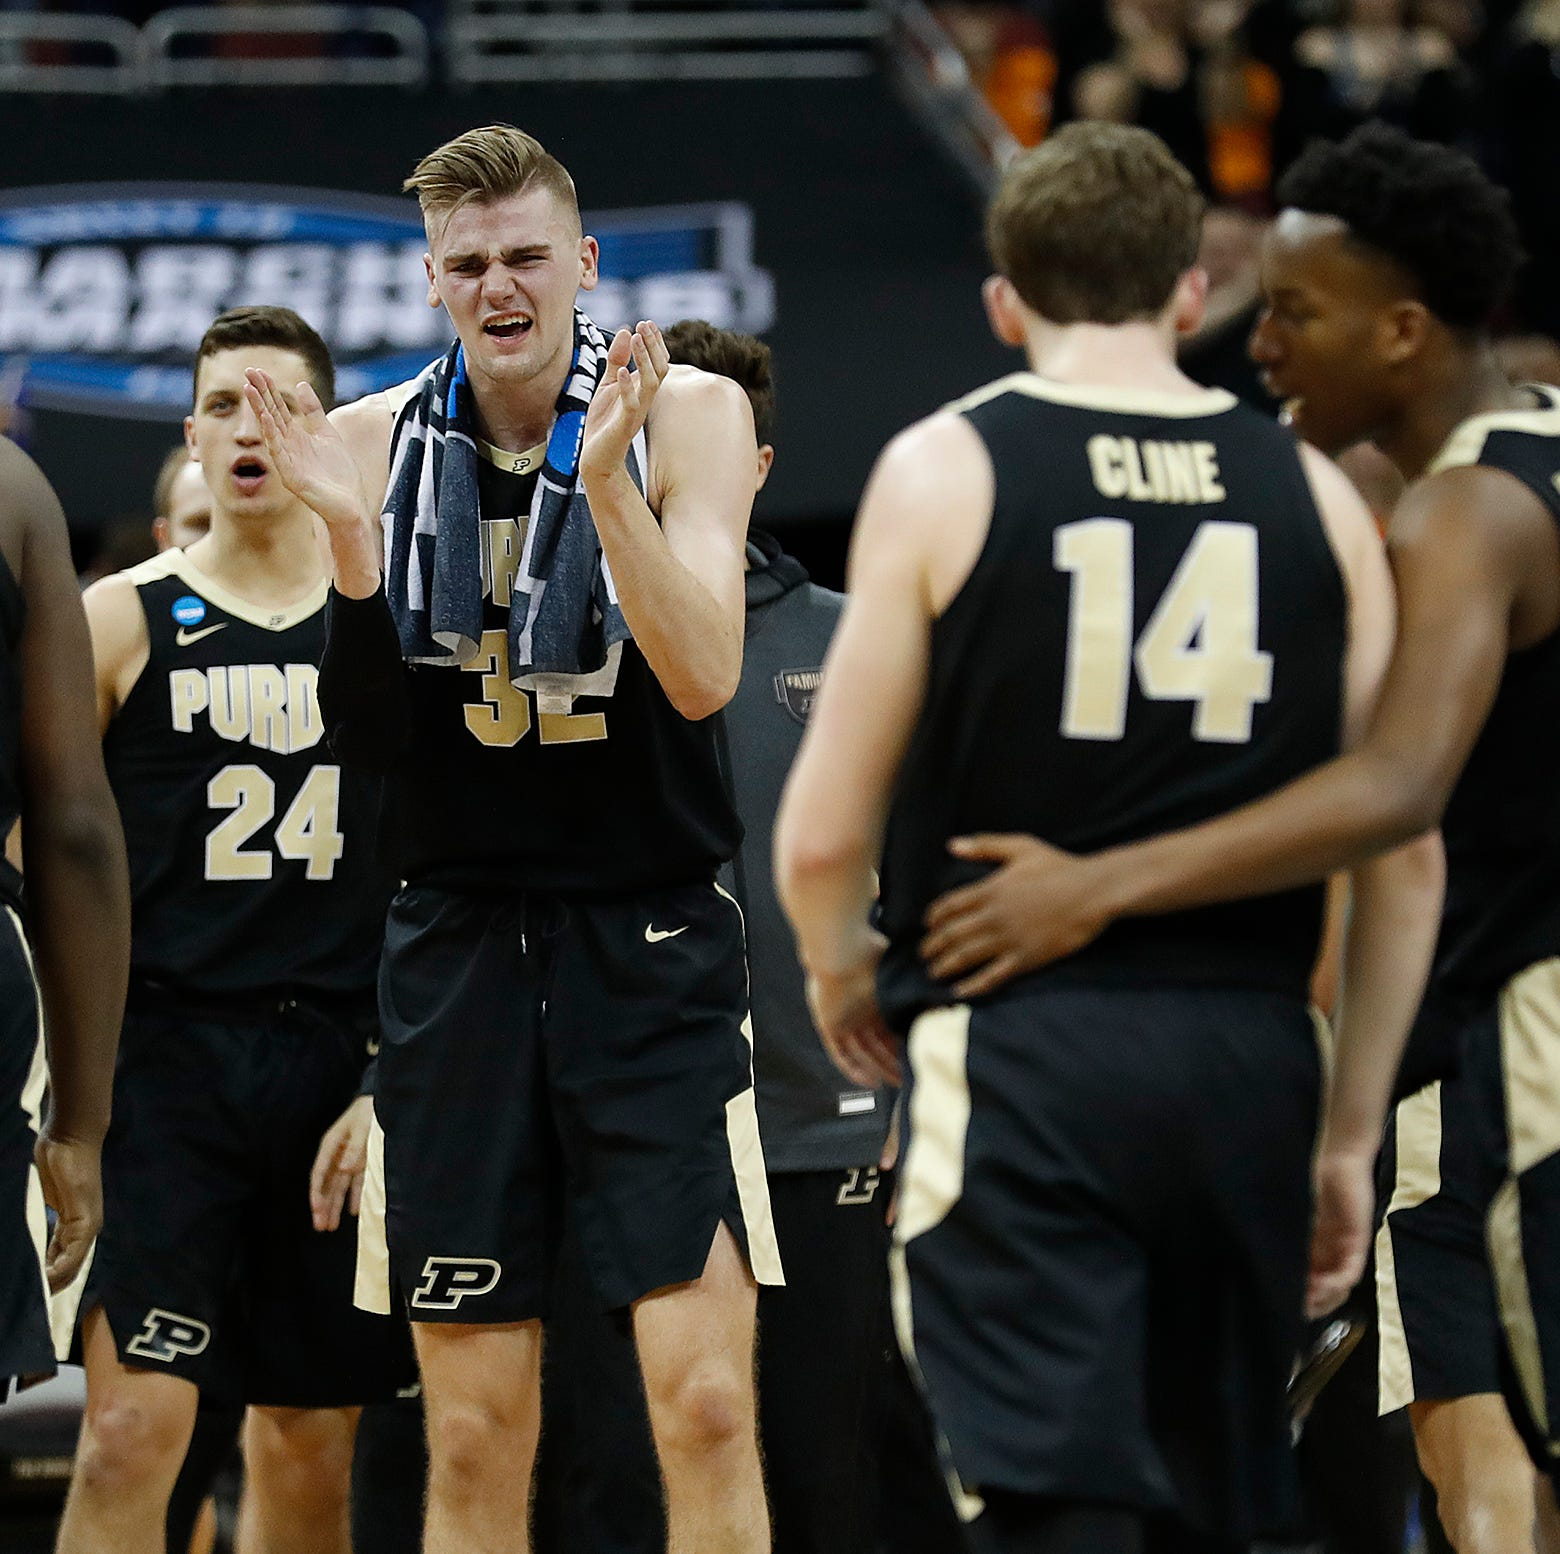 What will be different for Purdue next season